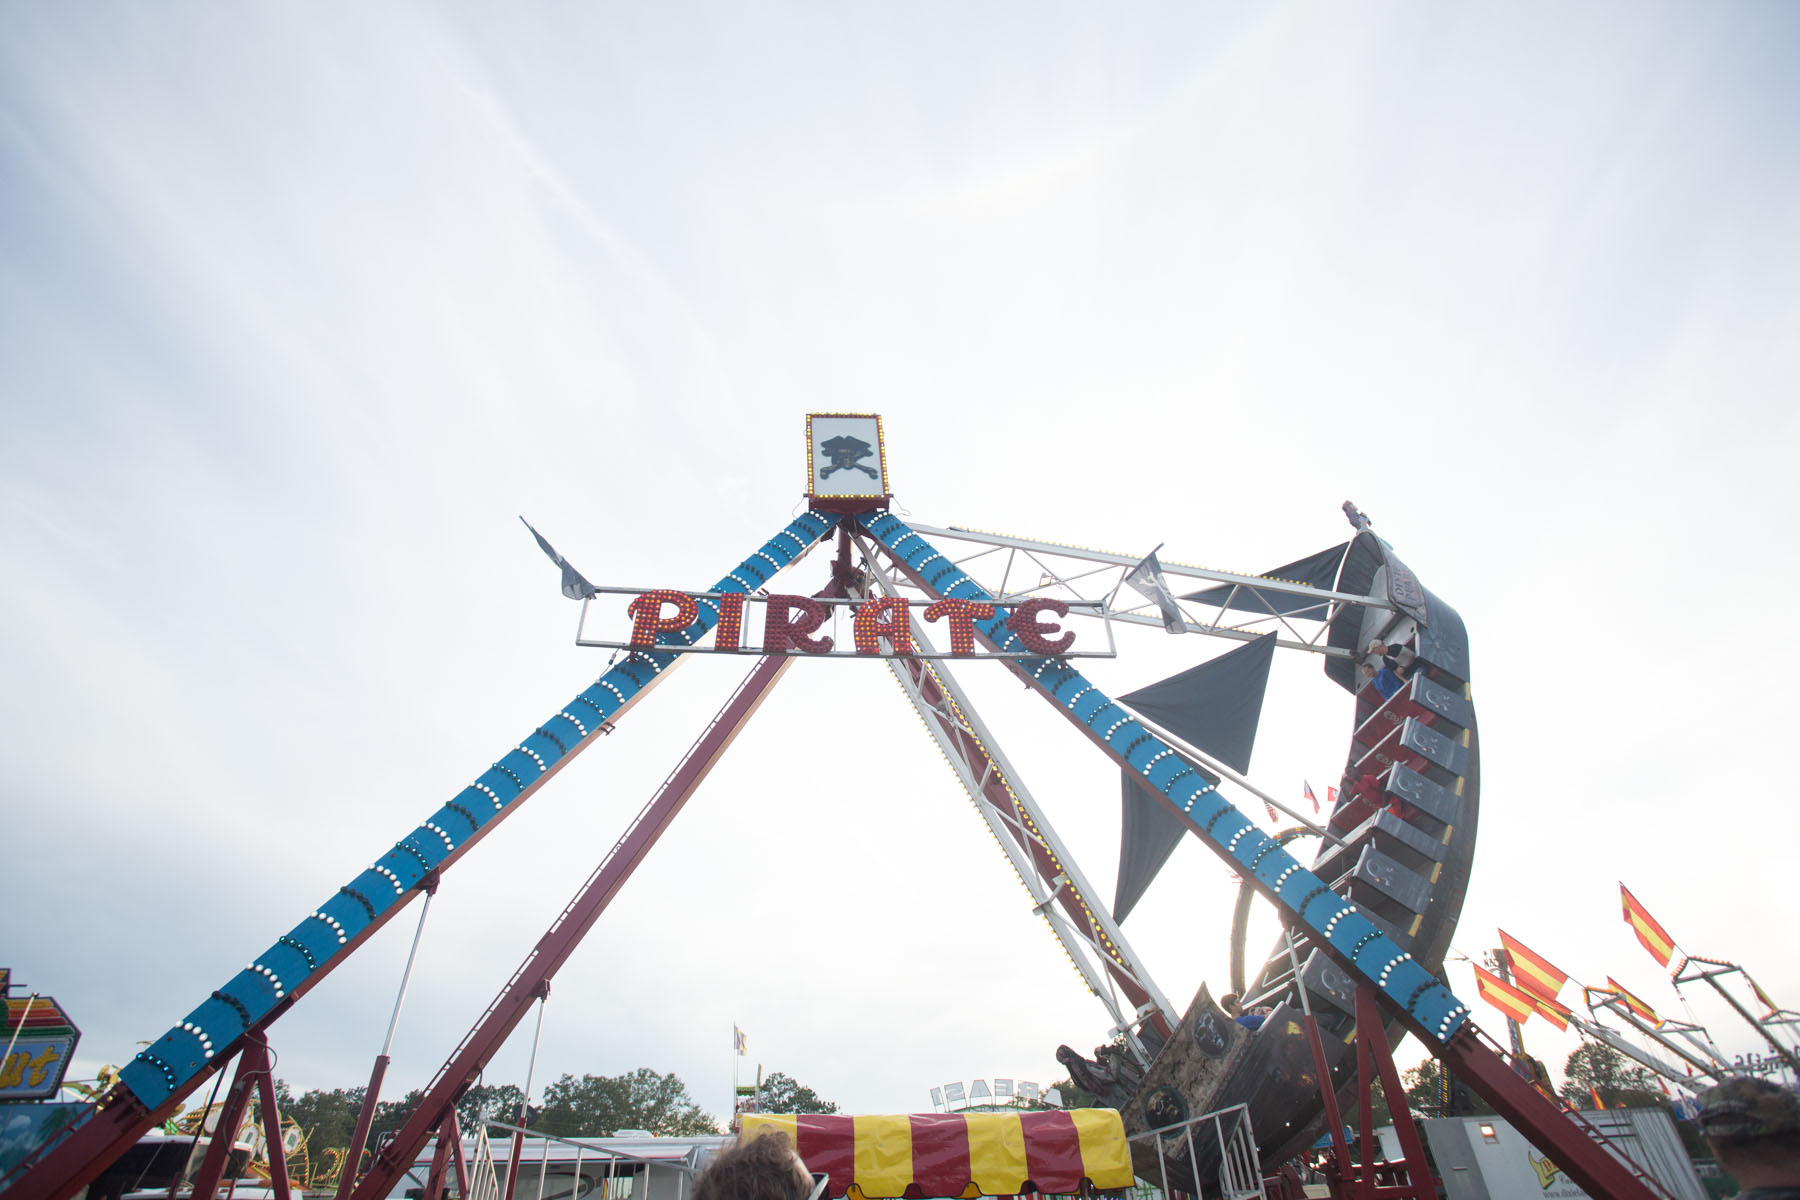 elbert county fair-201510085328.jpg